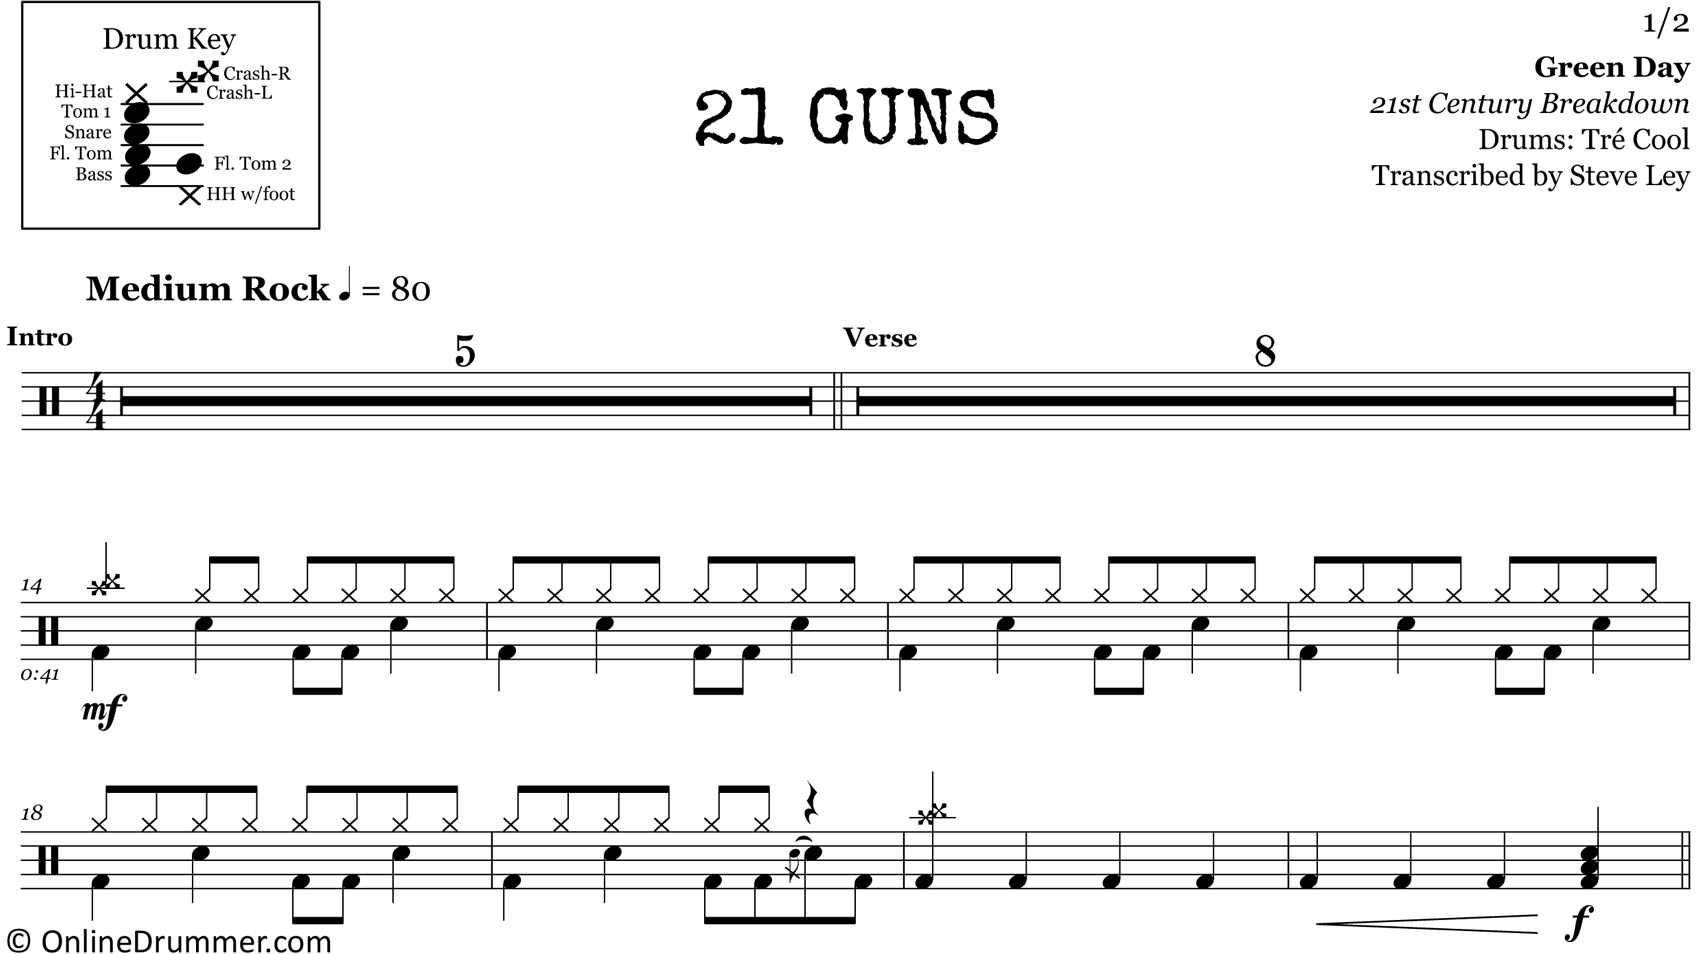 21 Guns - Green Day - Drum Sheet Music